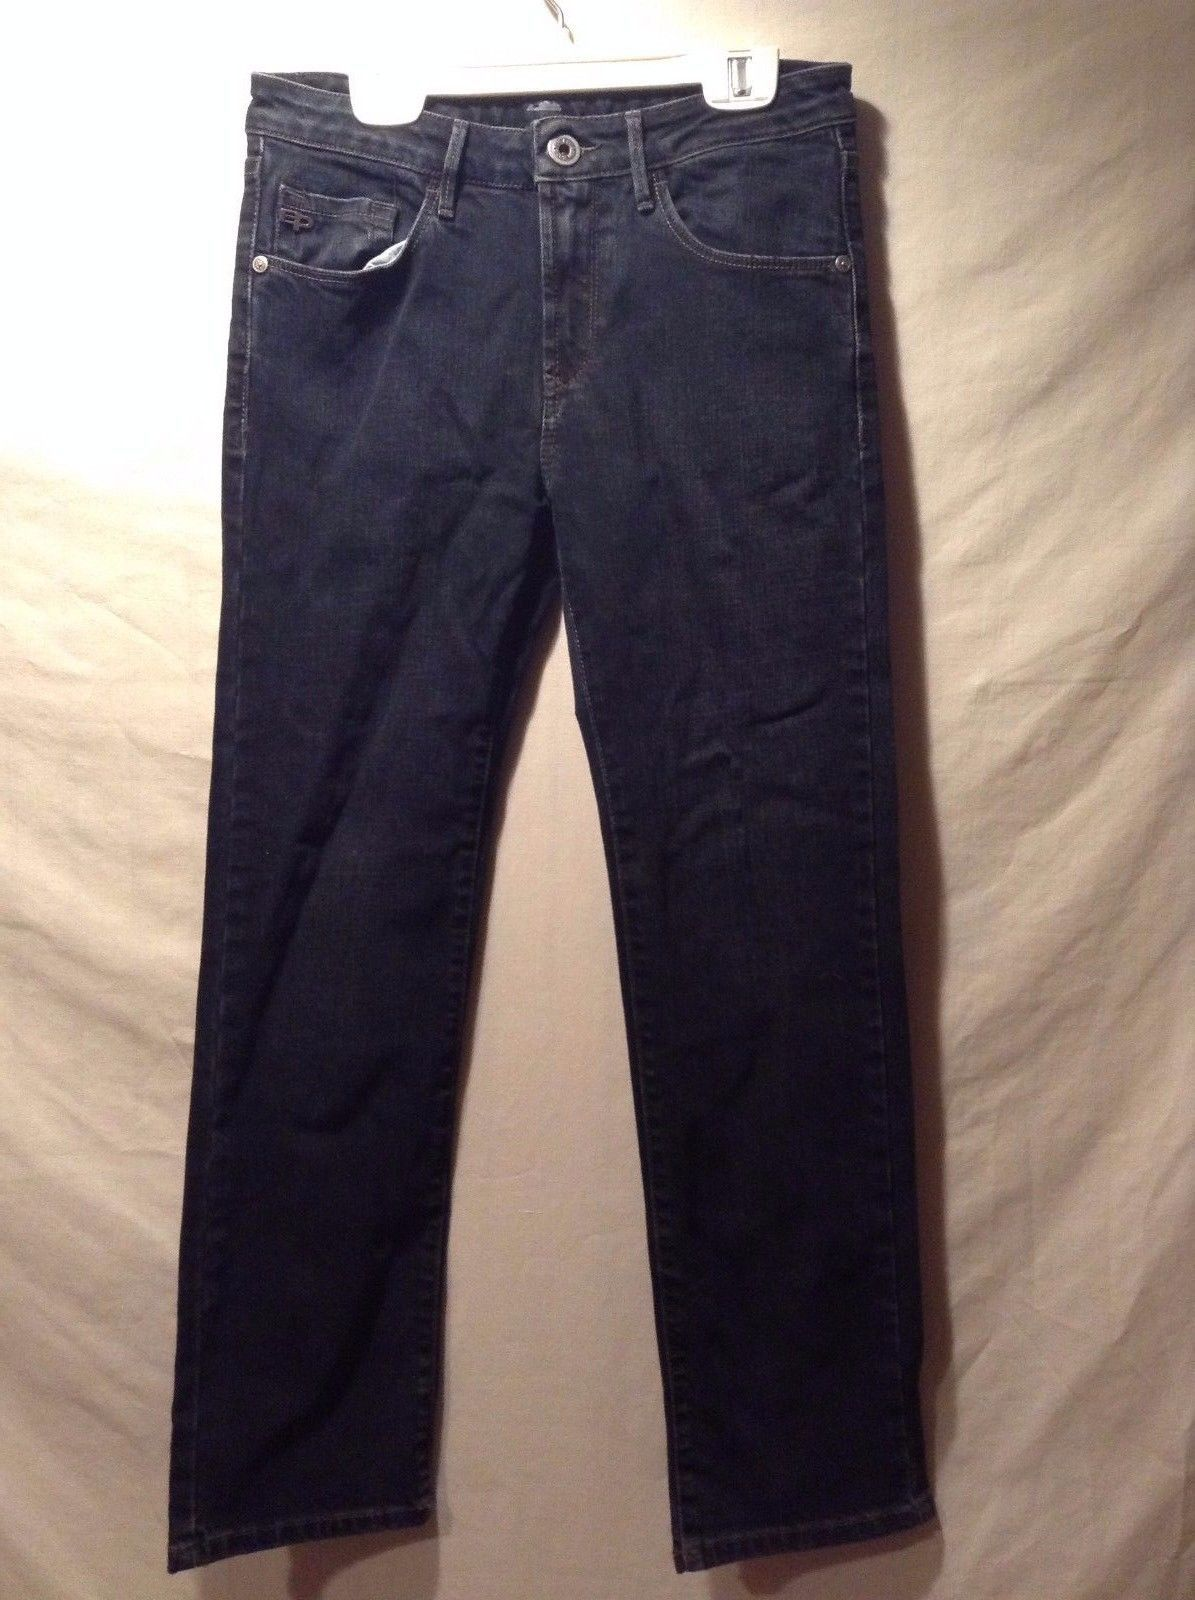 Eddie Pen Dark Blue Jeans Great Used Condition